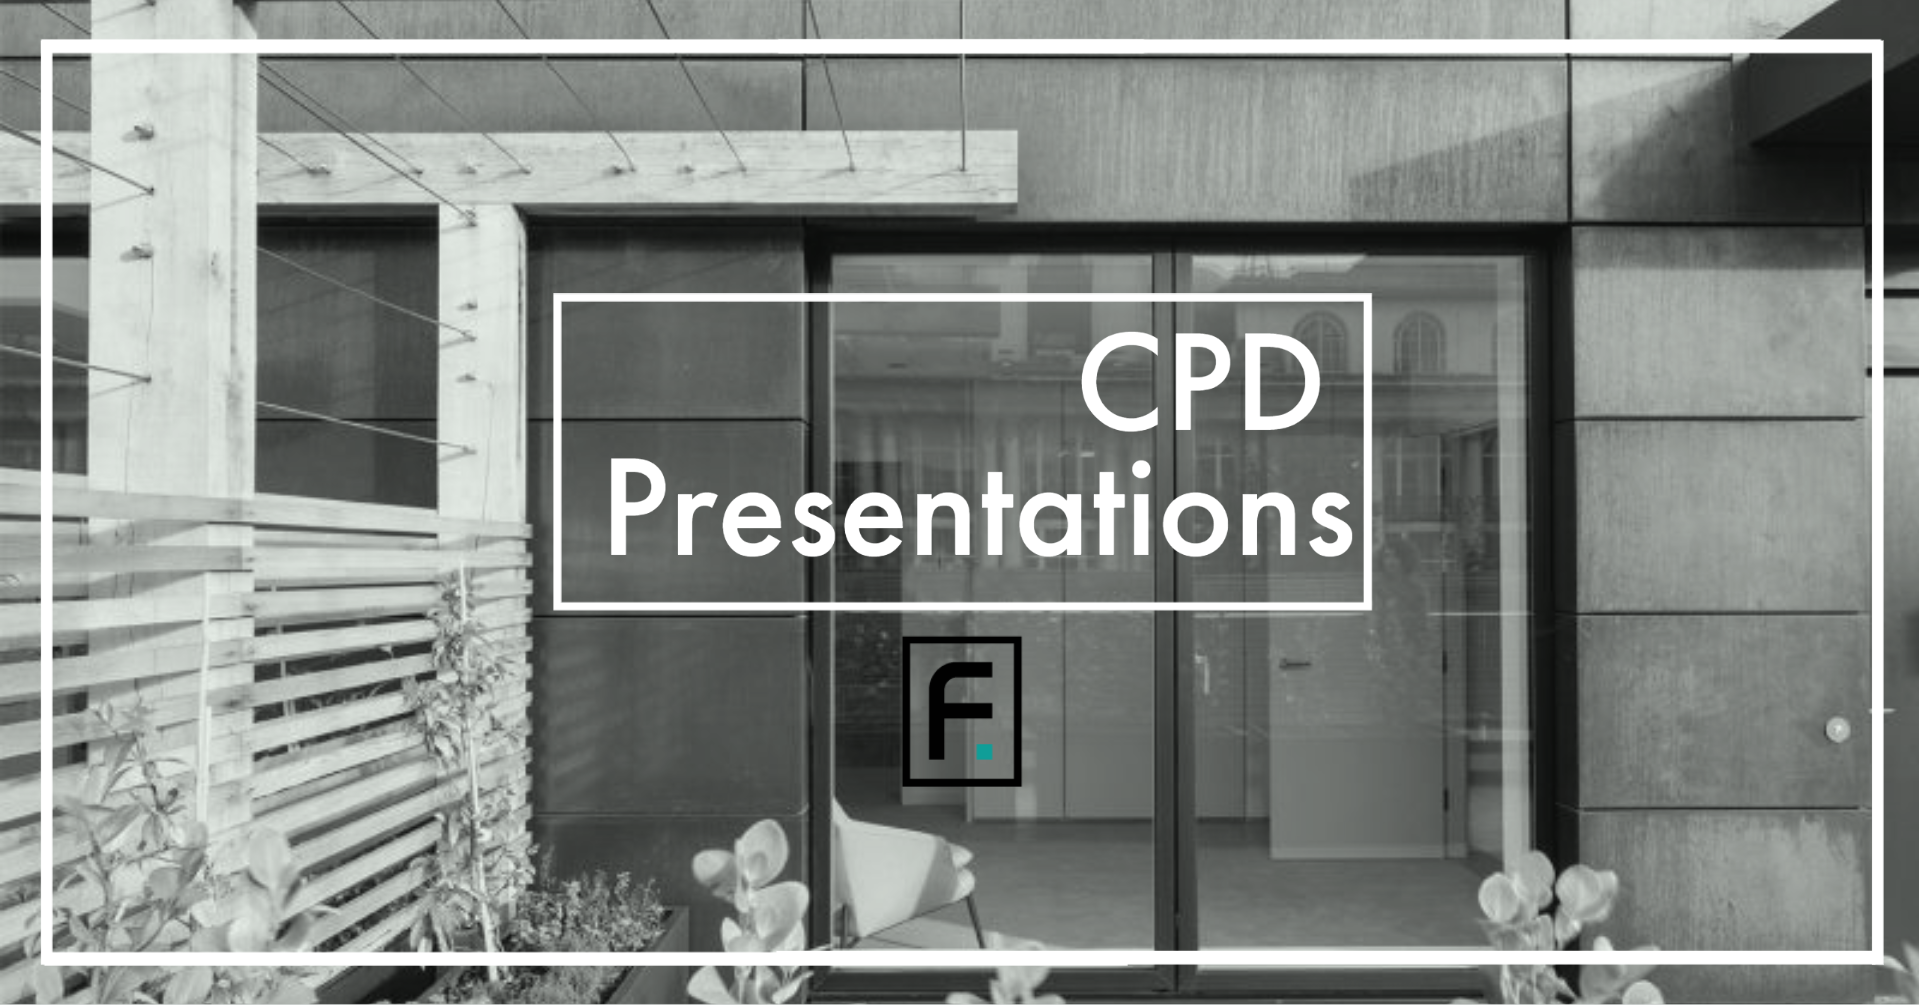 CPD Presentations for Architects